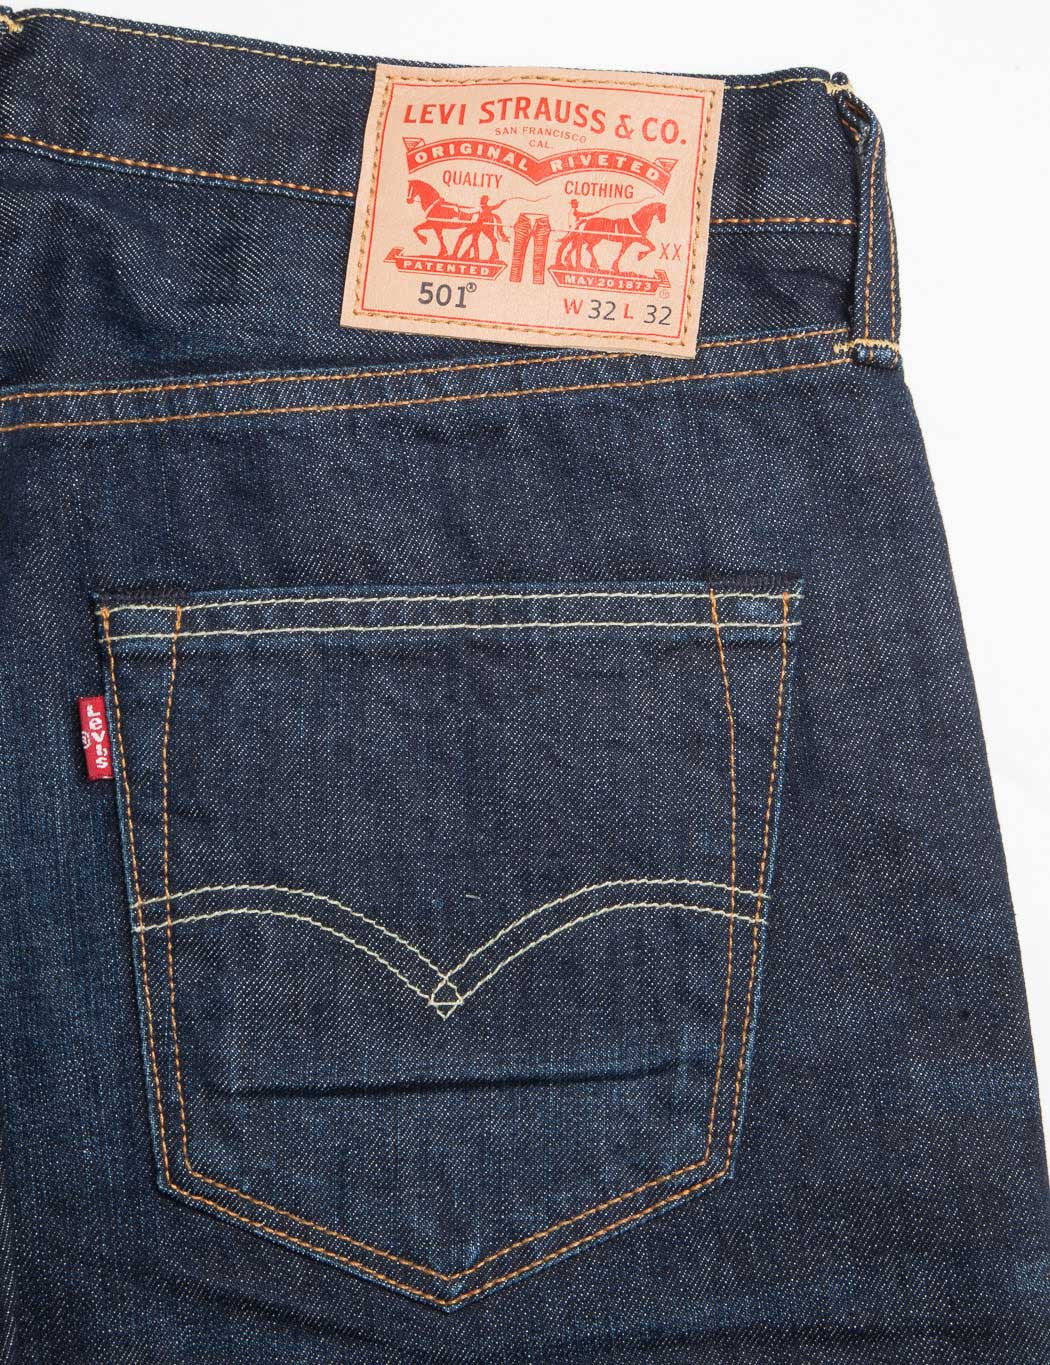 Levis 501 Original Fit Jeans - Blue Lane